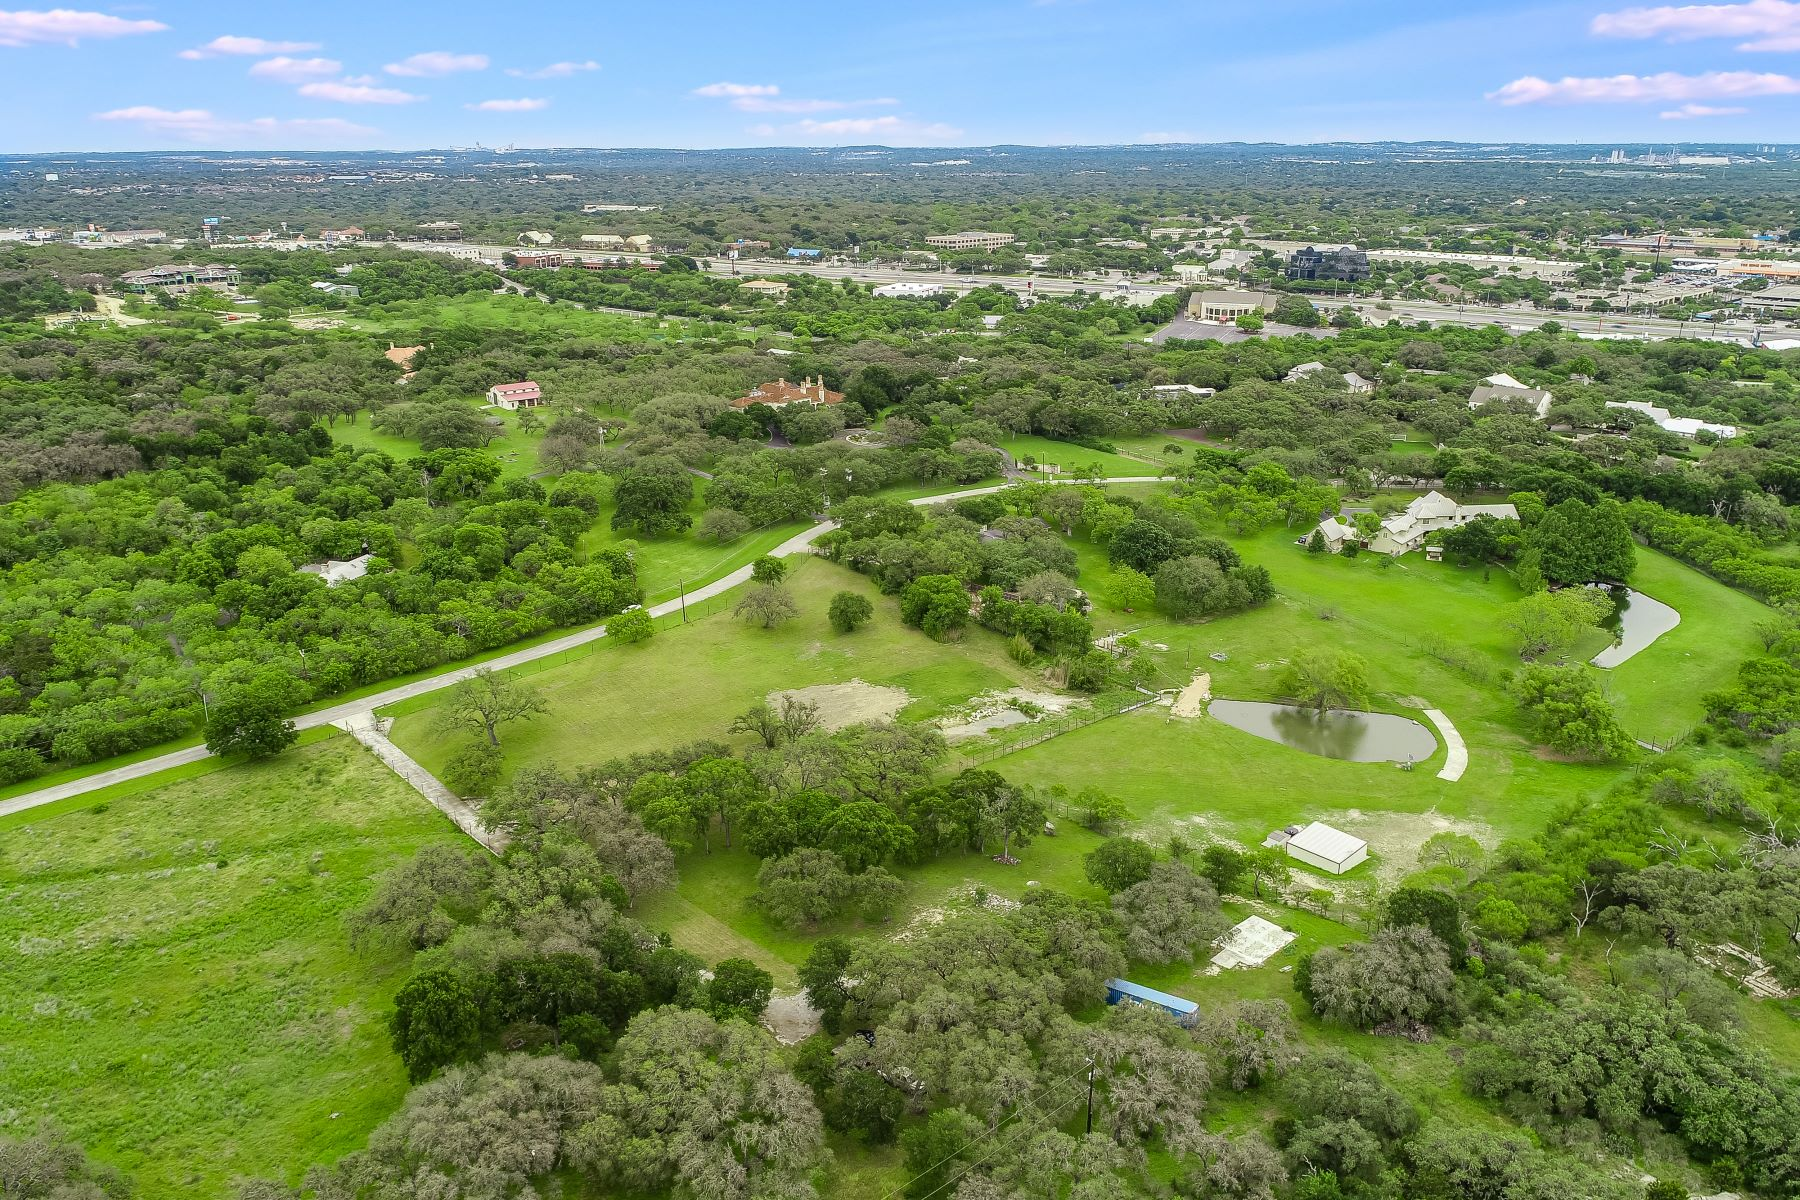 Land for Sale at Quality Property in Finest Location 106 Powder Horn Trail, San Antonio, Texas 78232 United States